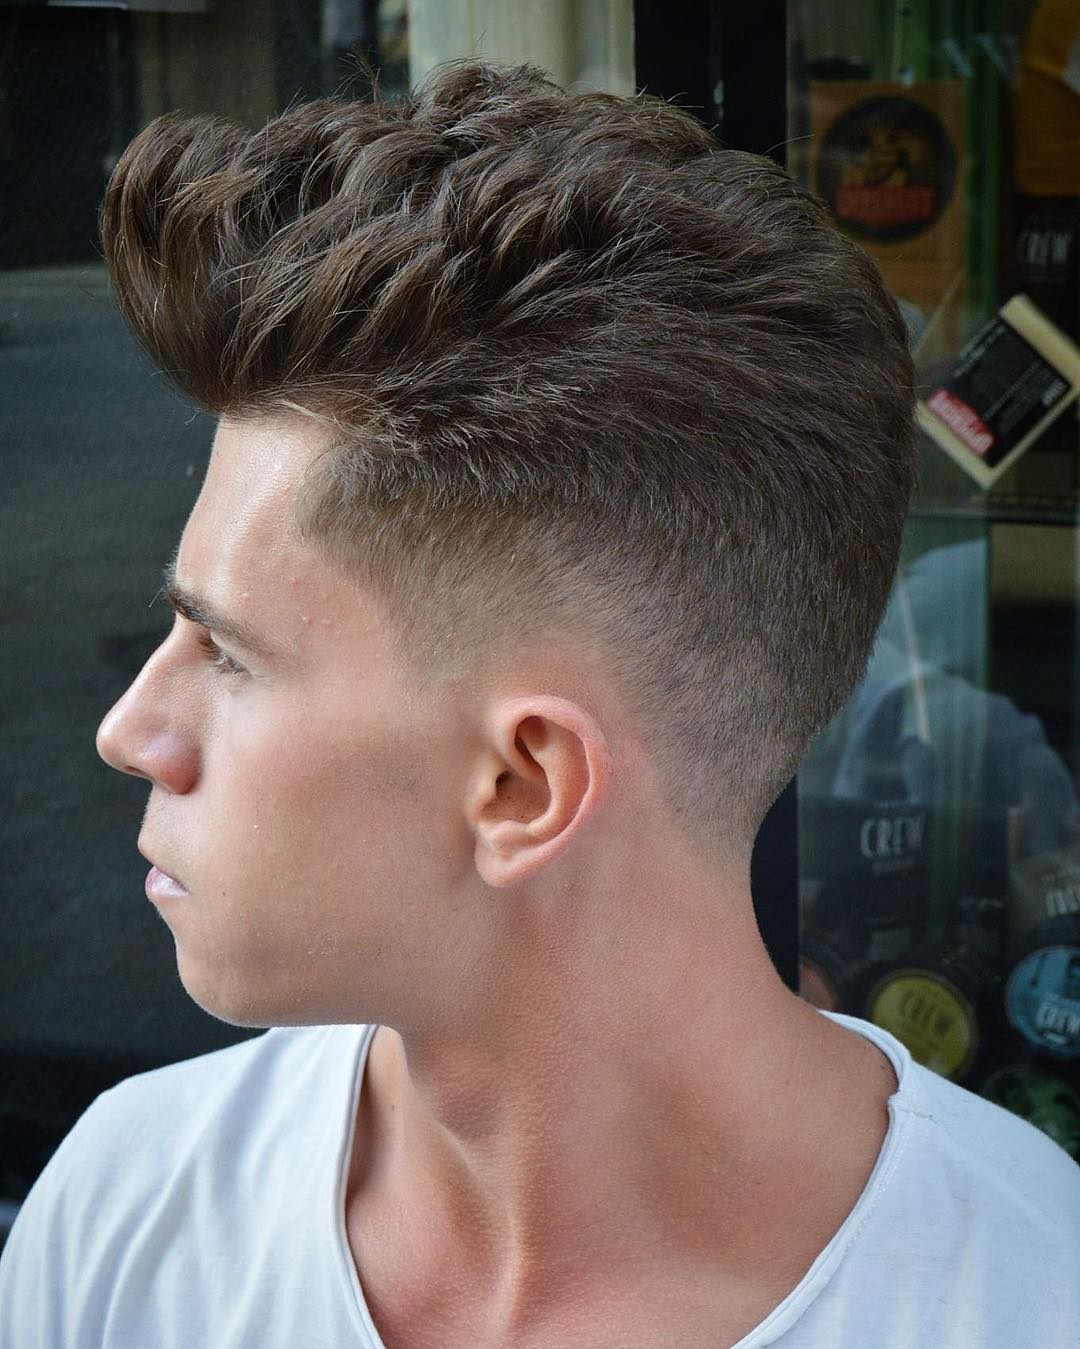 virogas.barber medium mens haircut